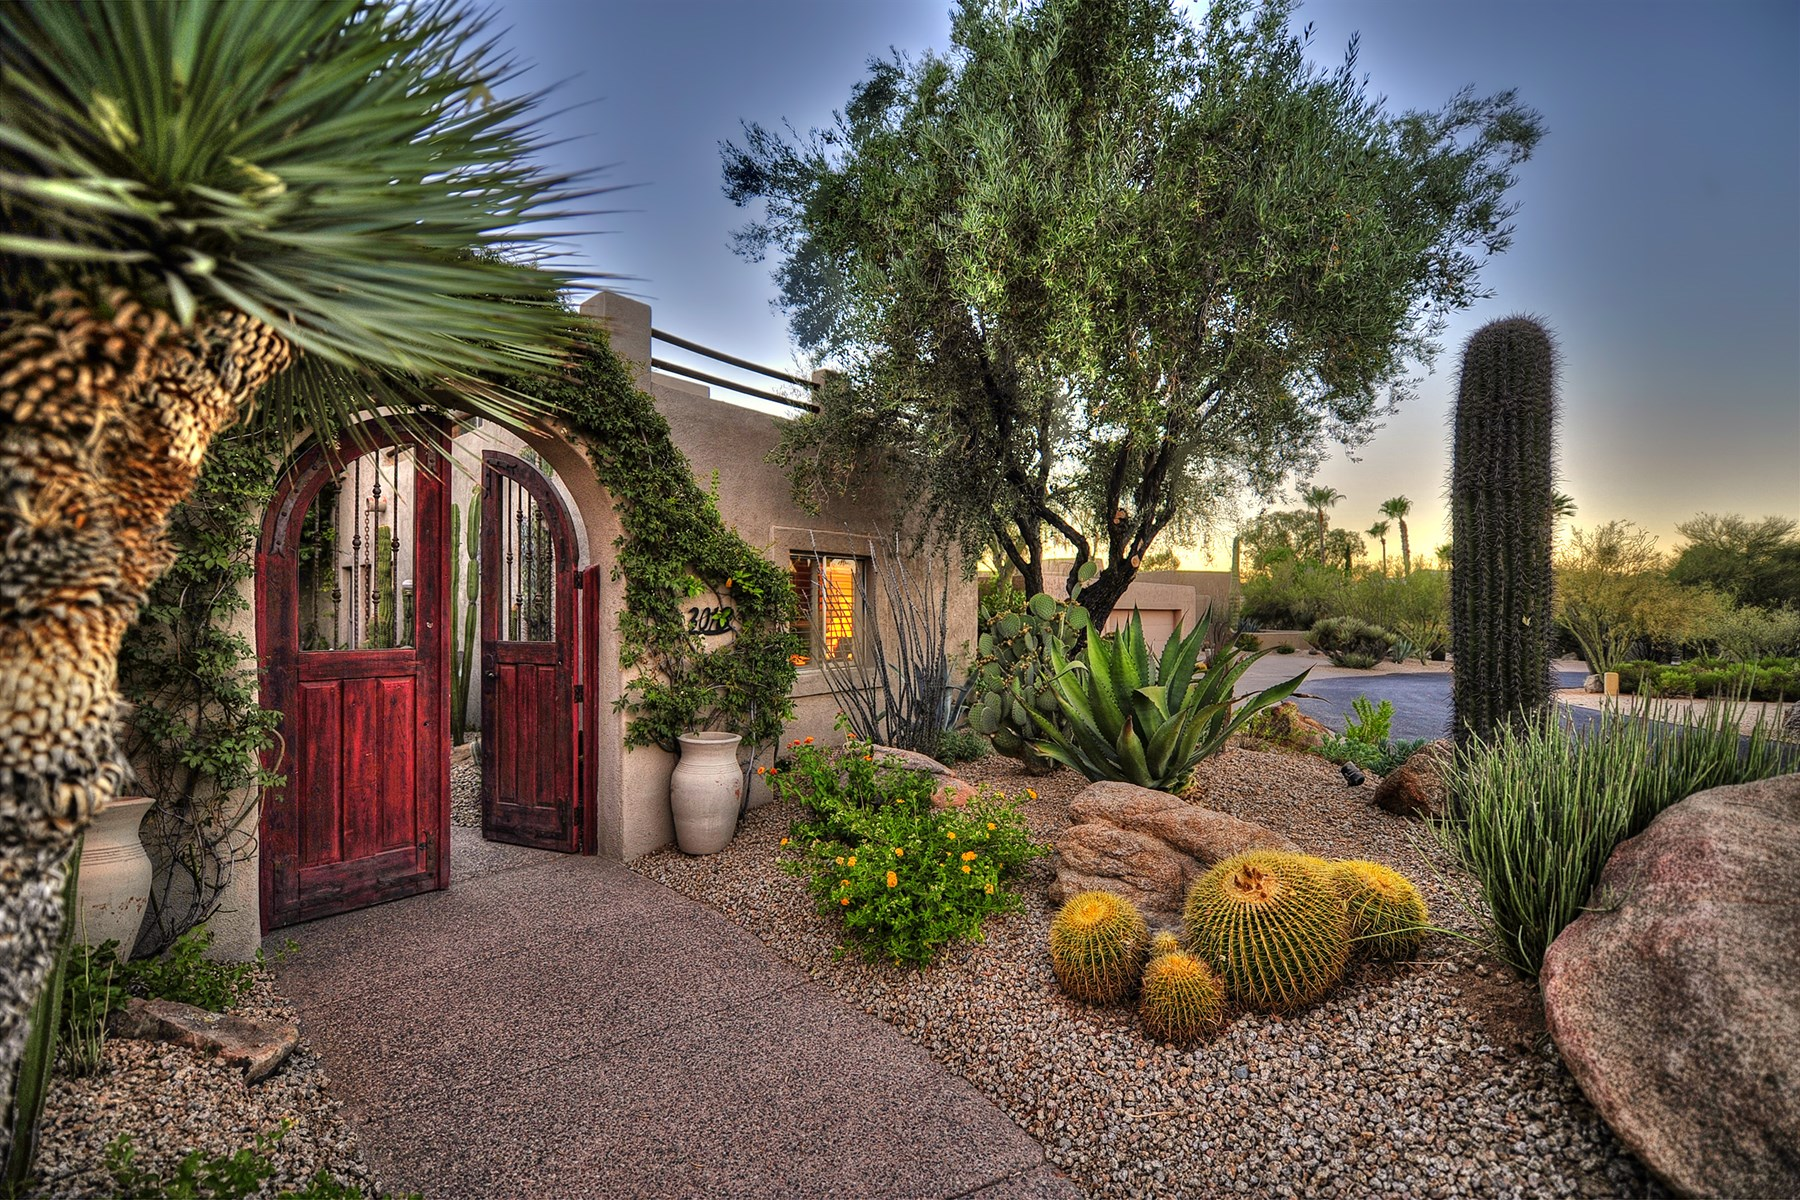 rentals property at Stunning two-story home in The Boulders community